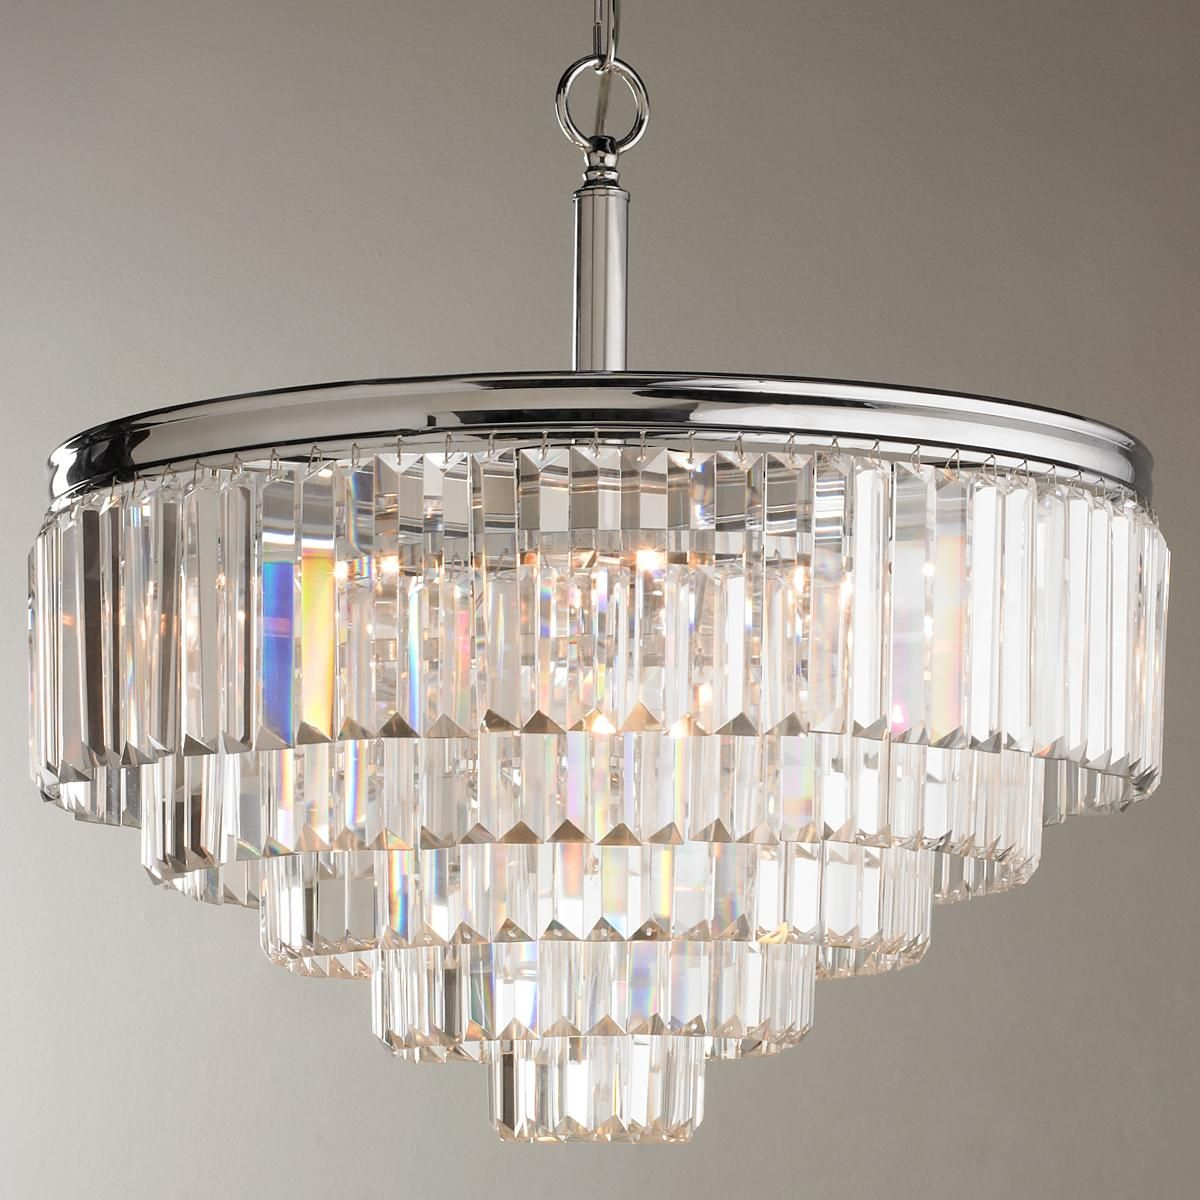 For double chandelier in formal dinging room - Modern Faceted Glass Layered Chandelier - Convertible (Chrome)